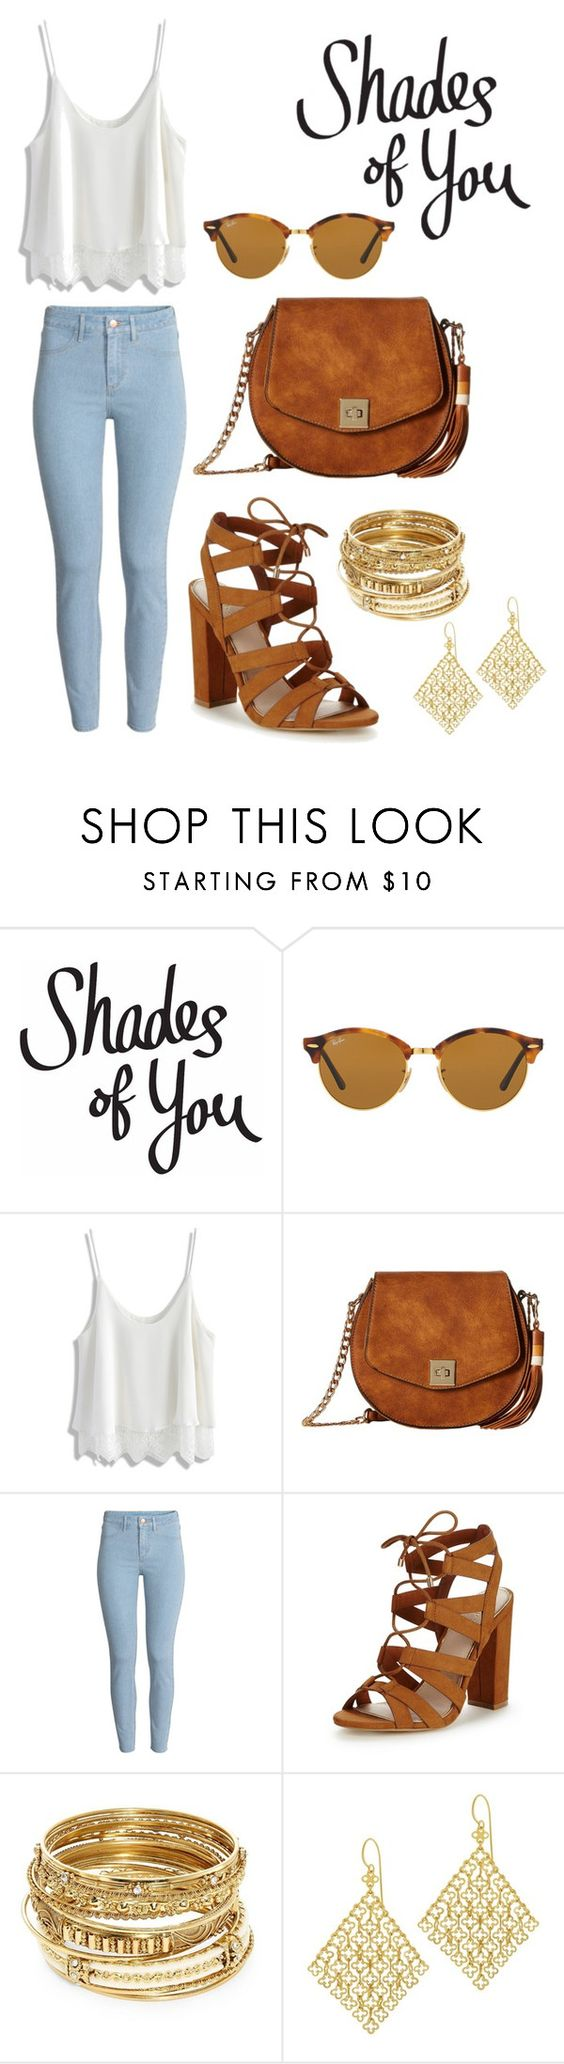 """Shades of You: Sunglass Hut Contest Entry"" by silkeselina ❤ liked on Polyvore featuring Ray-Ban, Chicwish, Gabriella Rocha, H&M, Lipsy, ABS by Allen Schwartz, Dinny Hall and shadesofyou"